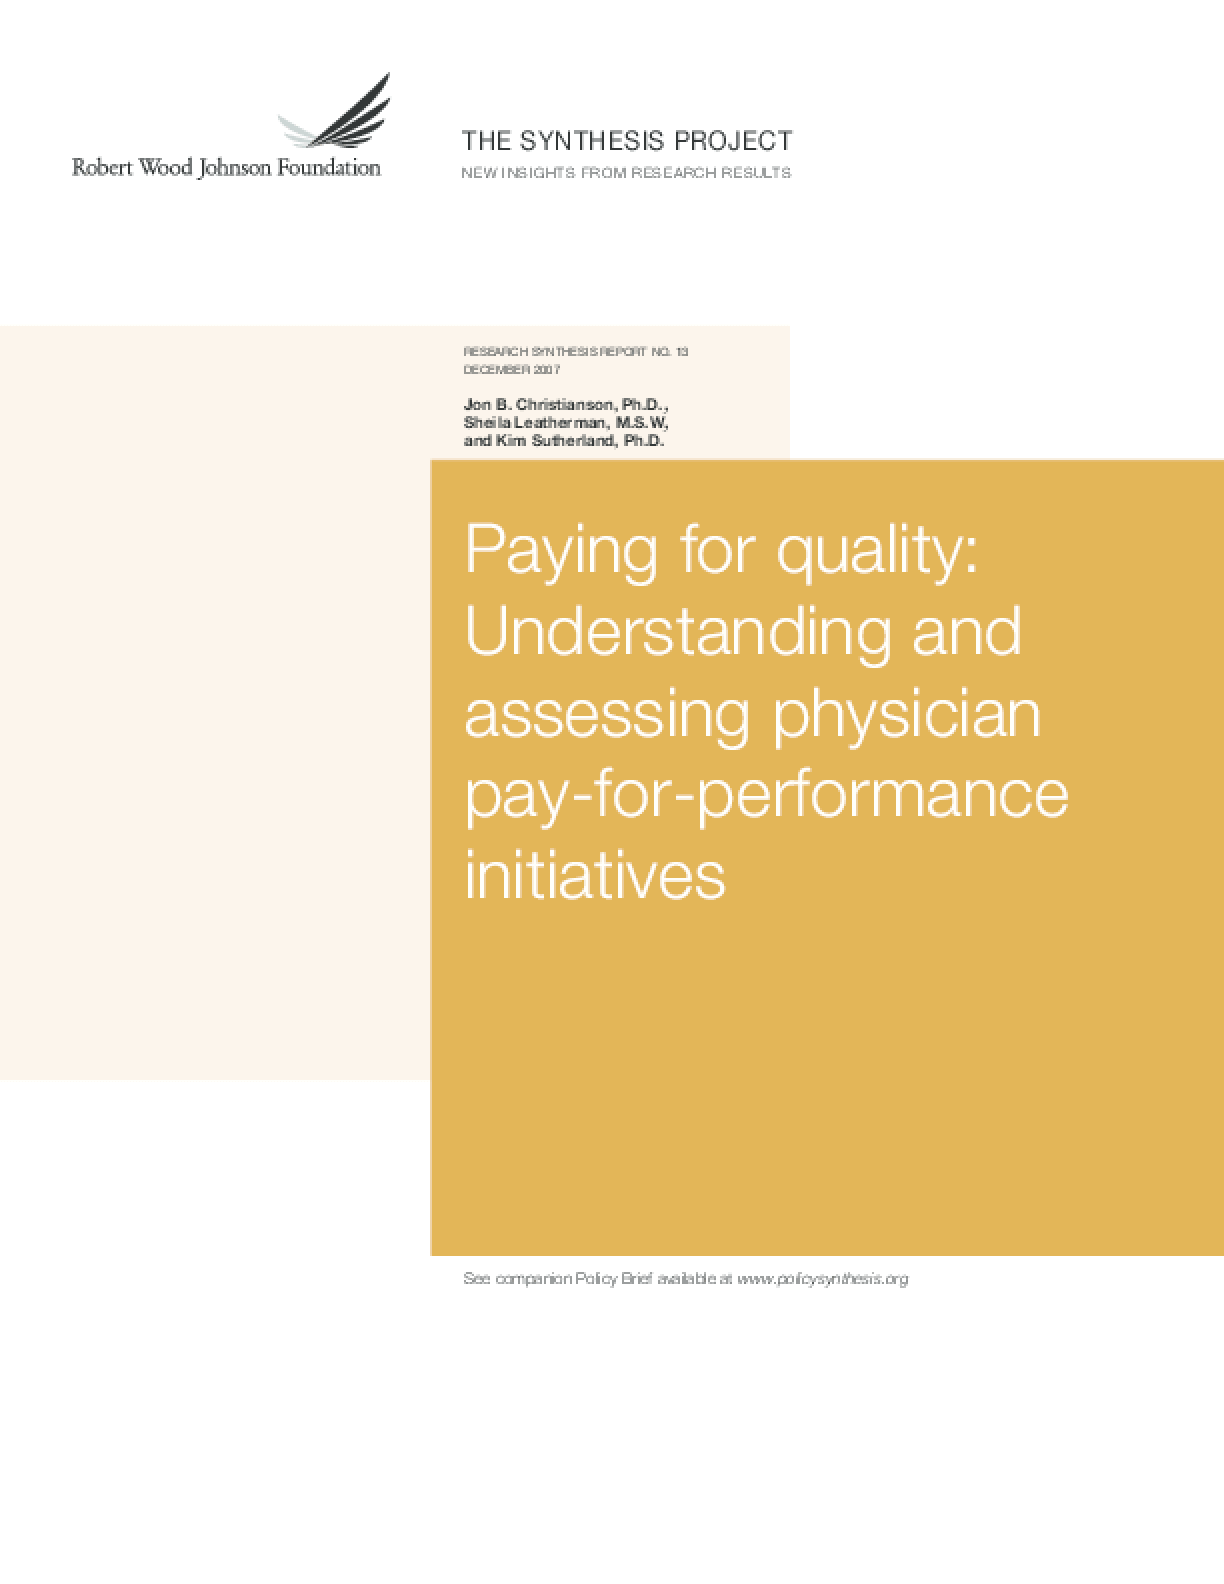 Paying for Quality: Understanding and Assessing Physician Pay-for-Performance Initiatives